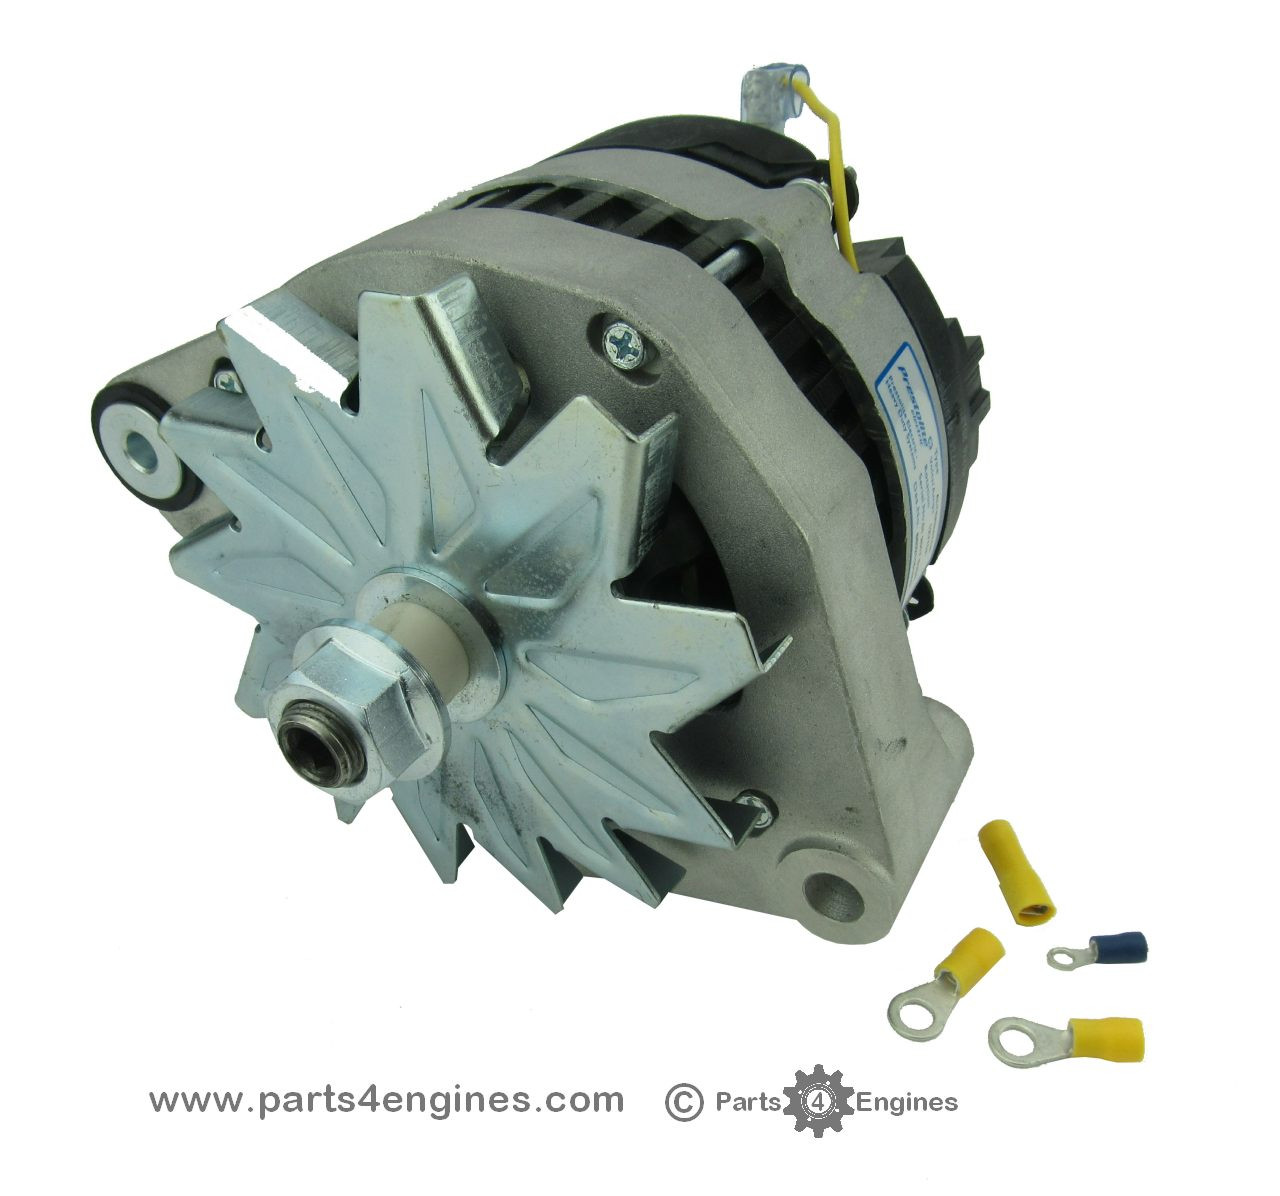 volvo penta md22 isolated earth alternator rh parts4engines com Volvo V70 Electrical Diagram Volvo Fuel Pump Wiring Diagram